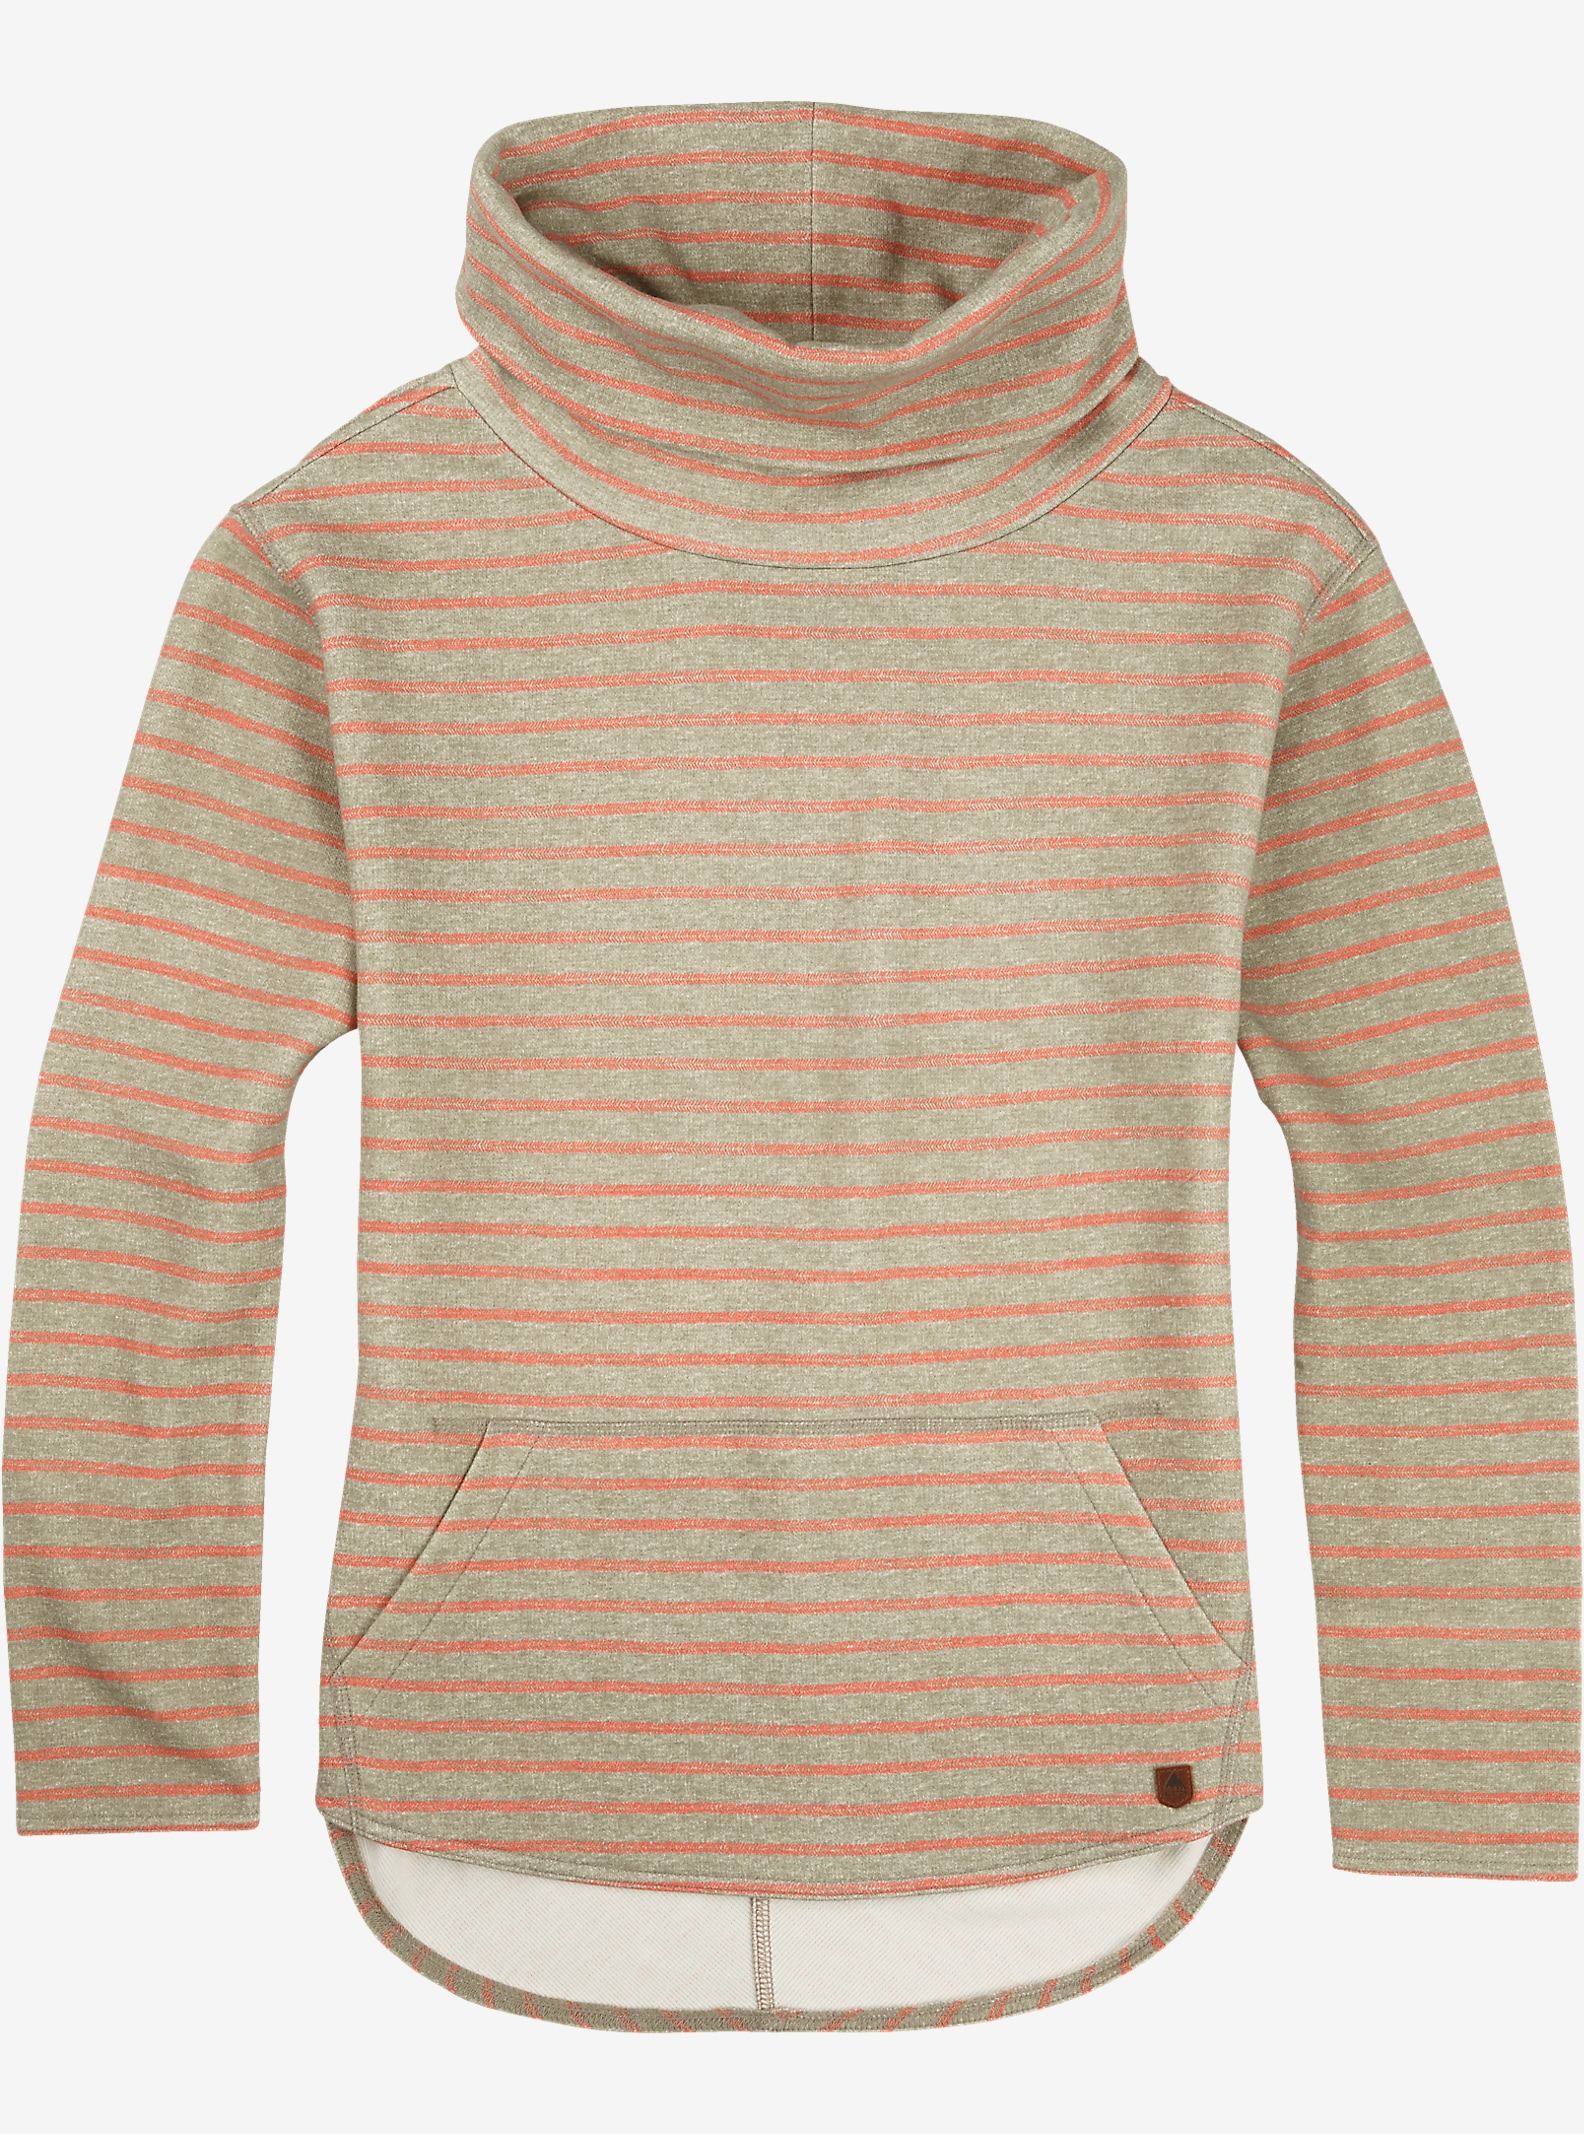 Burton Ellmore Pullover shown in Vetiver Heather Hatch Stripe